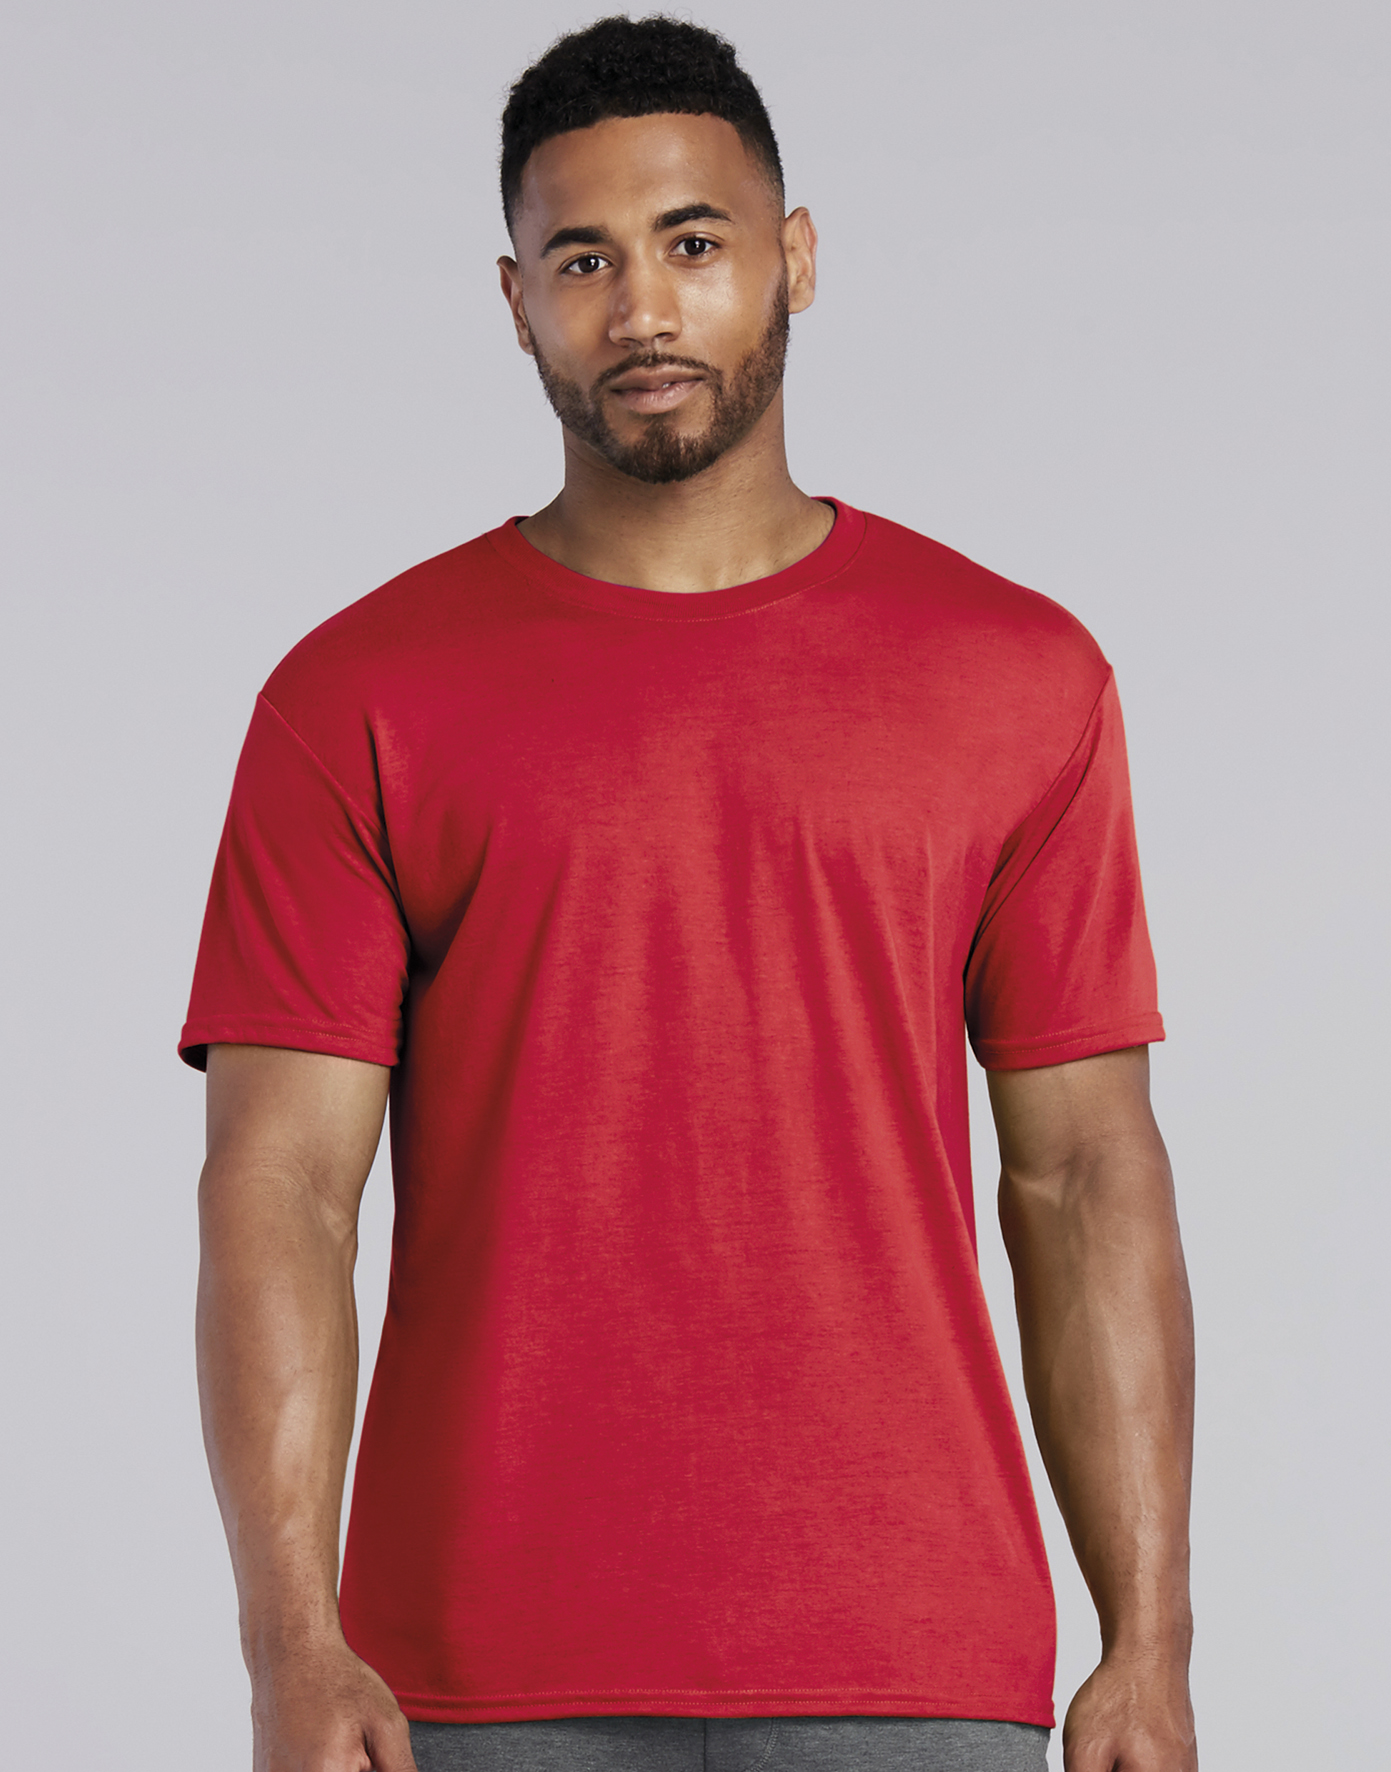 Gildan performance adult t shirt 42000 for What is a performance t shirt